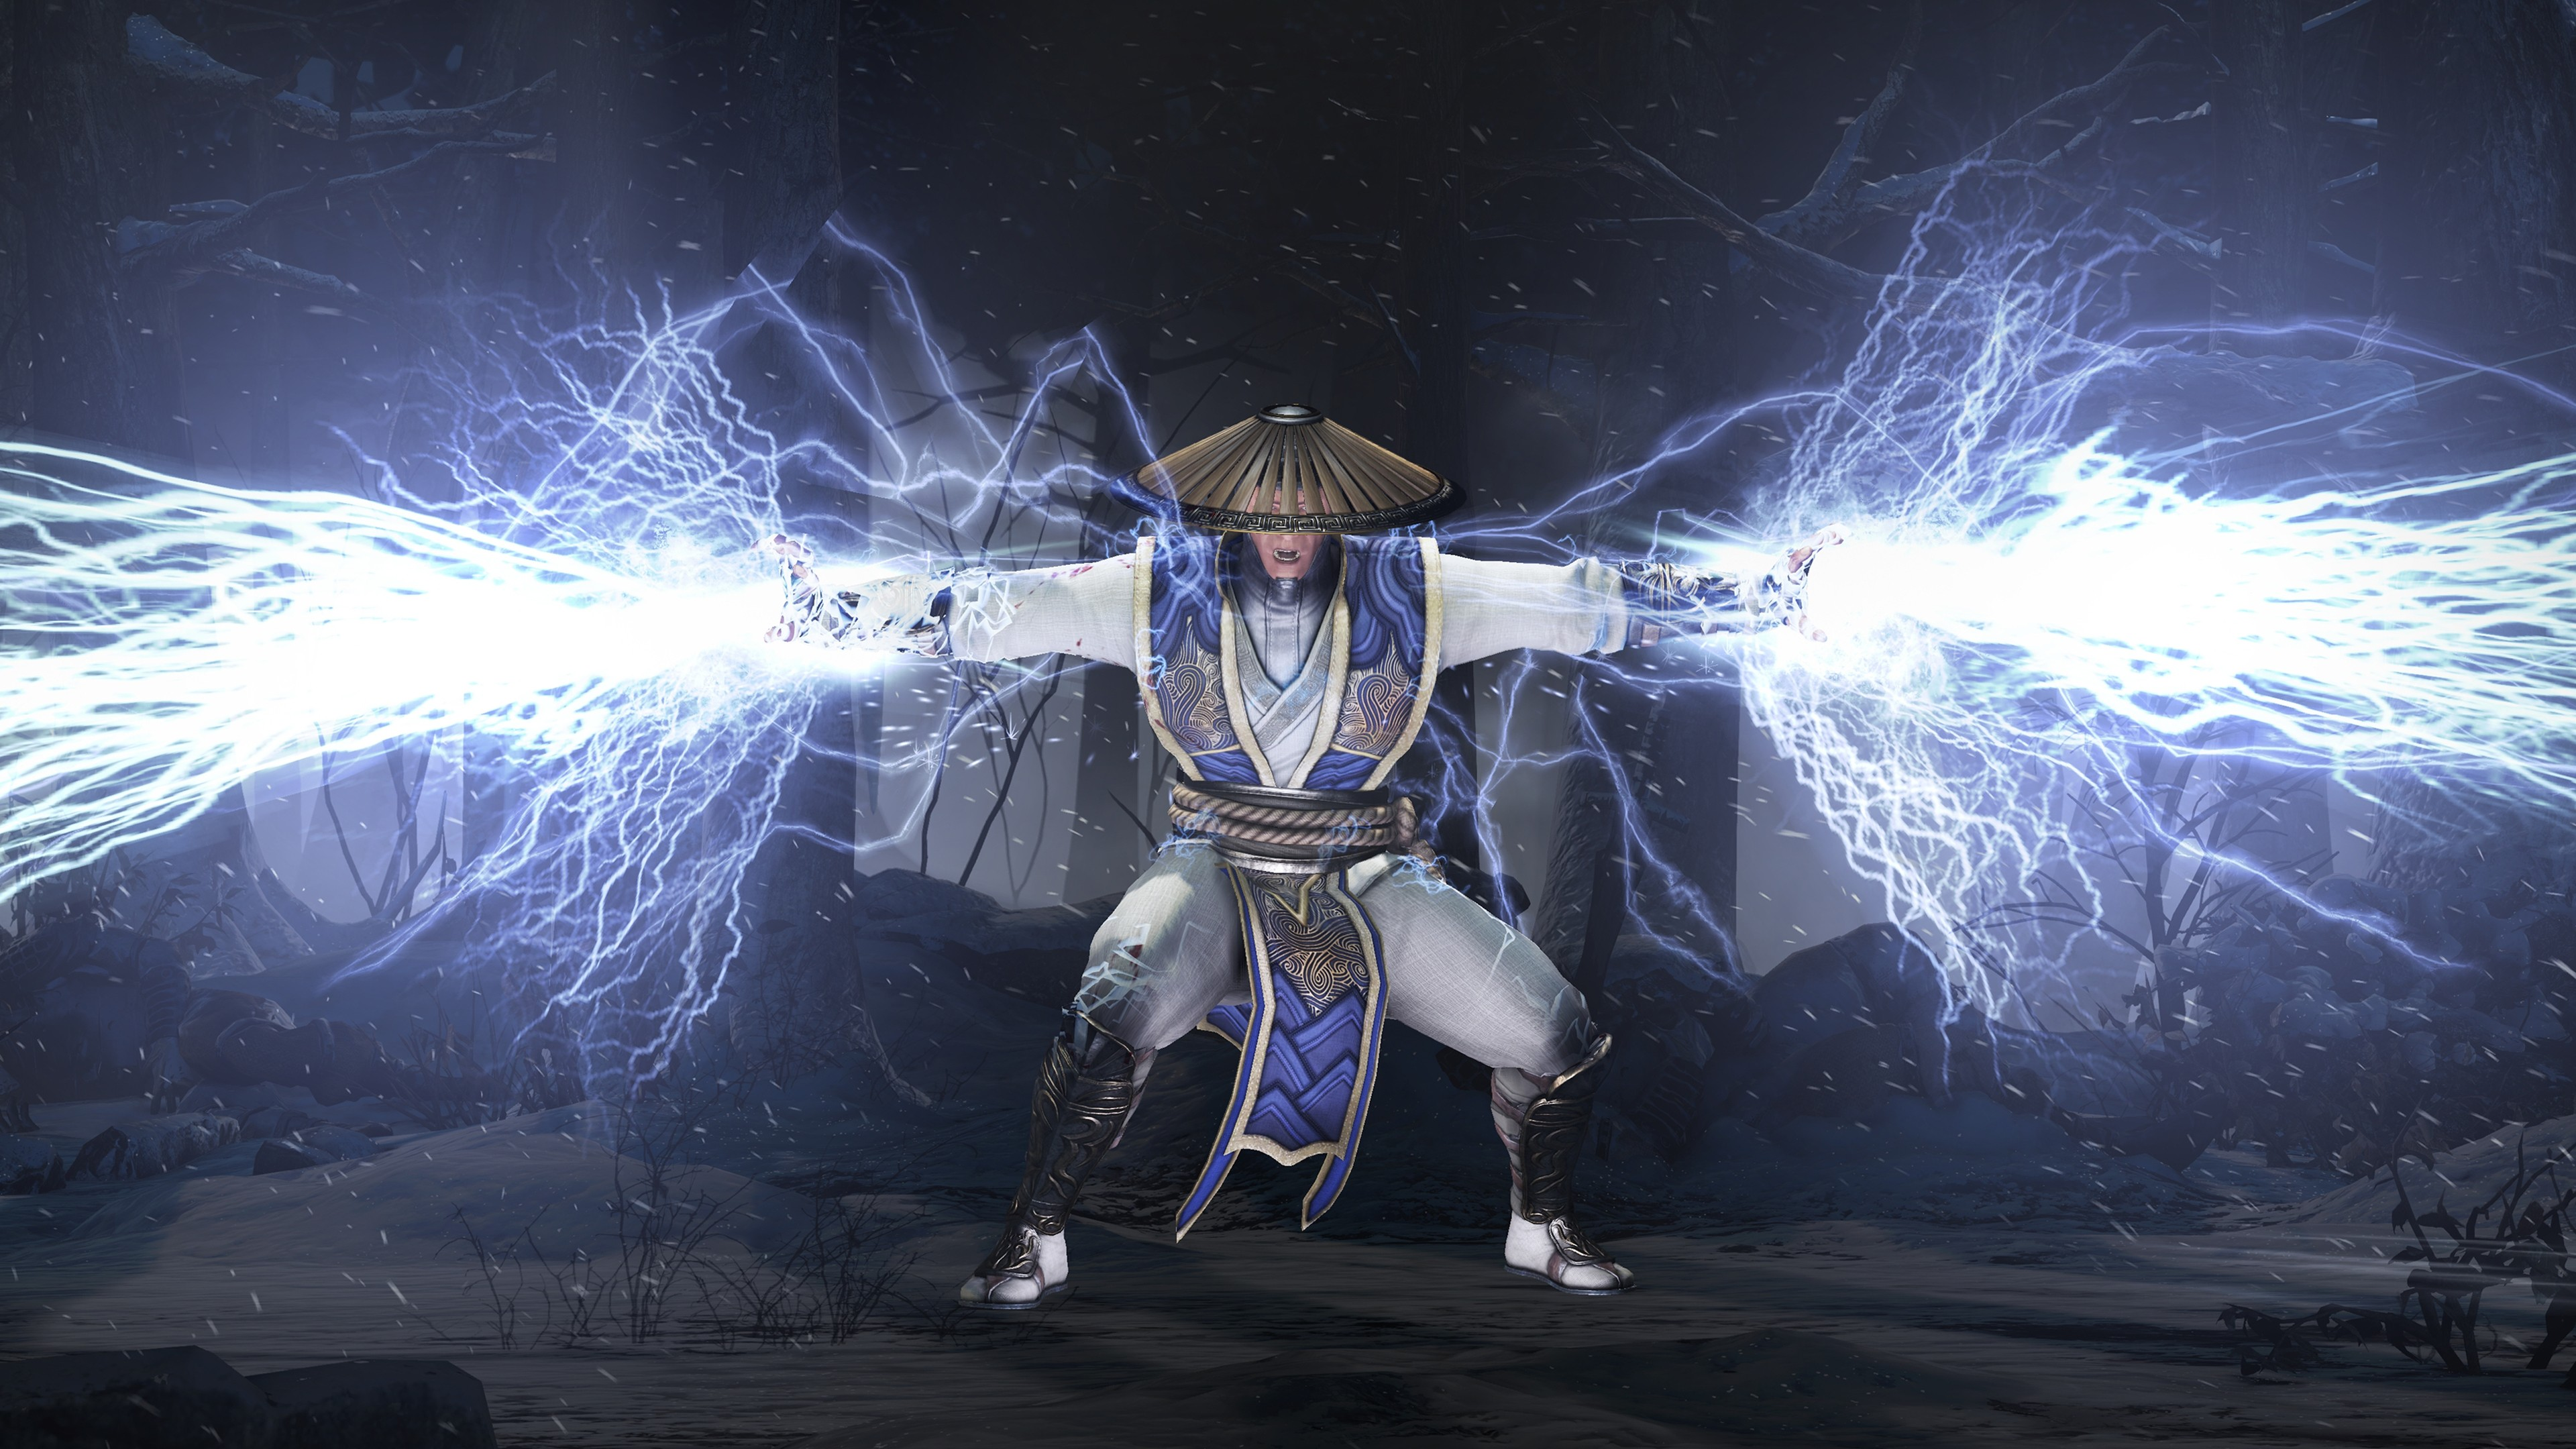 Mortal Kombat X Background: Raiden Mortal Kombat X Wallpaper